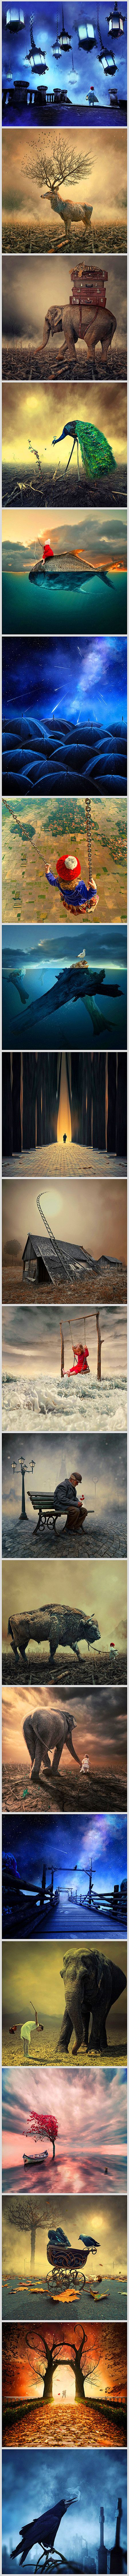 20 Mind-Bending Photo Manipulations That Blend Fantasy with Reality - TechEBlog